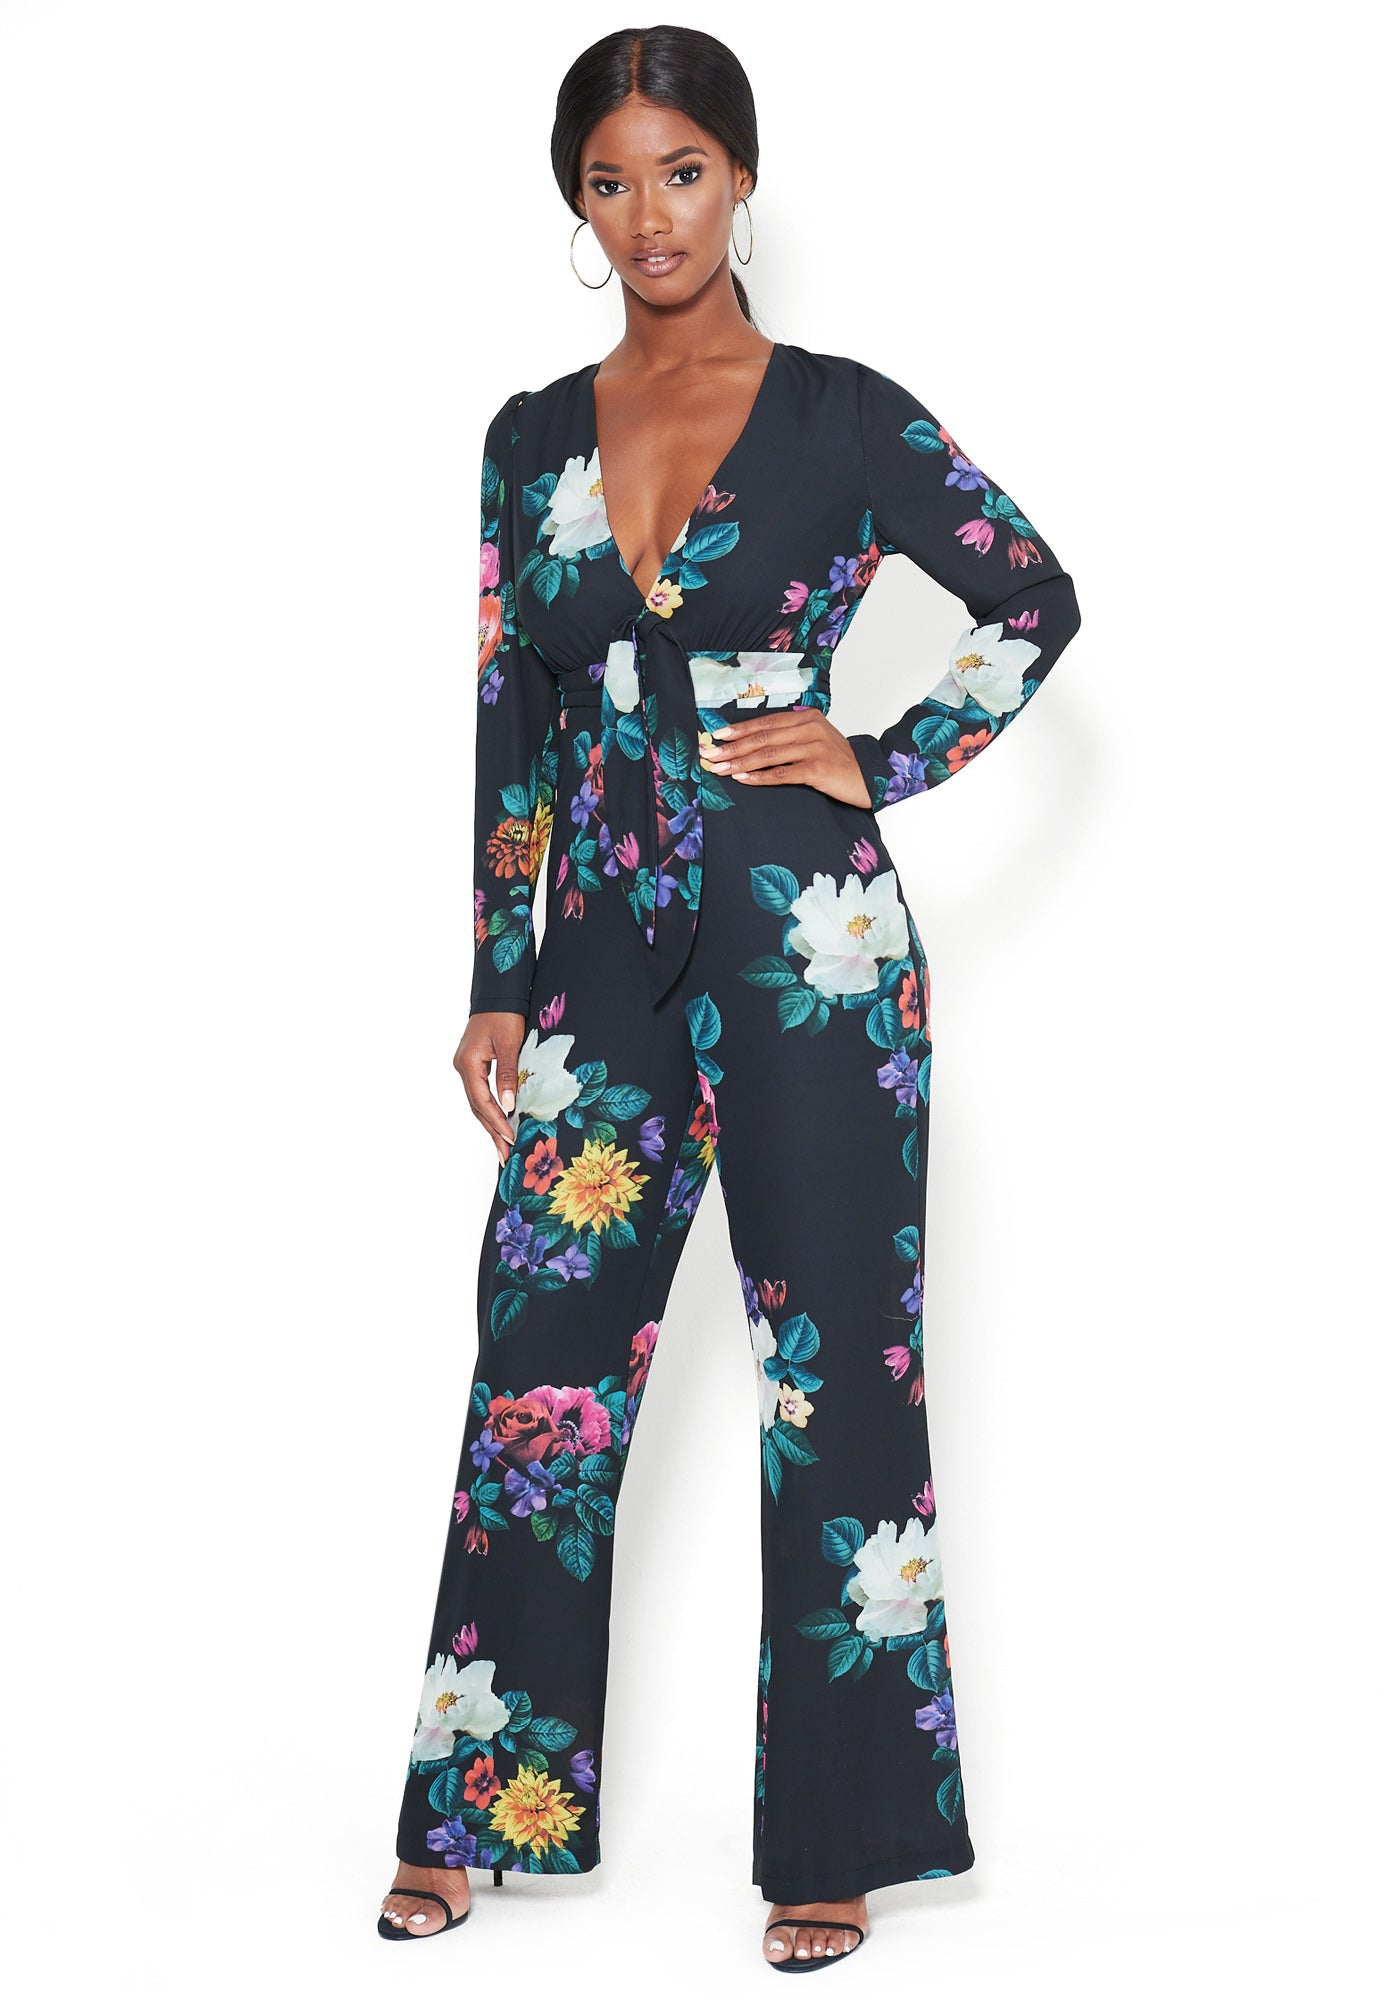 Bebe Women's Print Tie Waist Jumpsuit, Size 00 in Floral Polyester